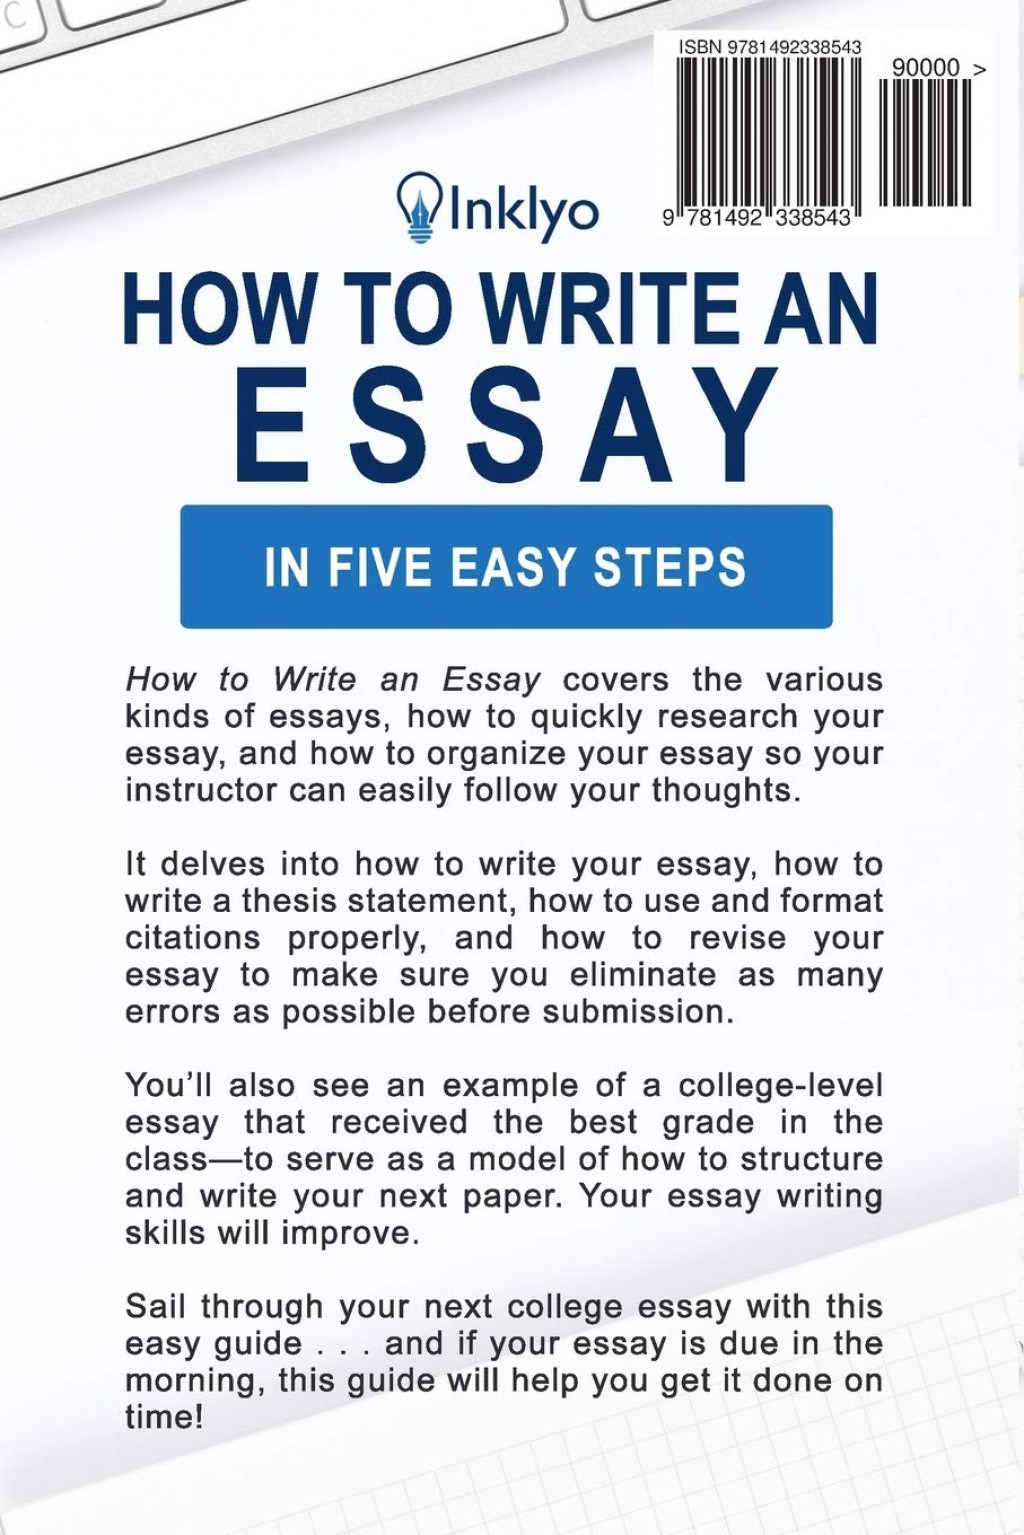 003 Write Essay Example Awful A About Your Best Friend Descriptive On Freedom Fighter Large